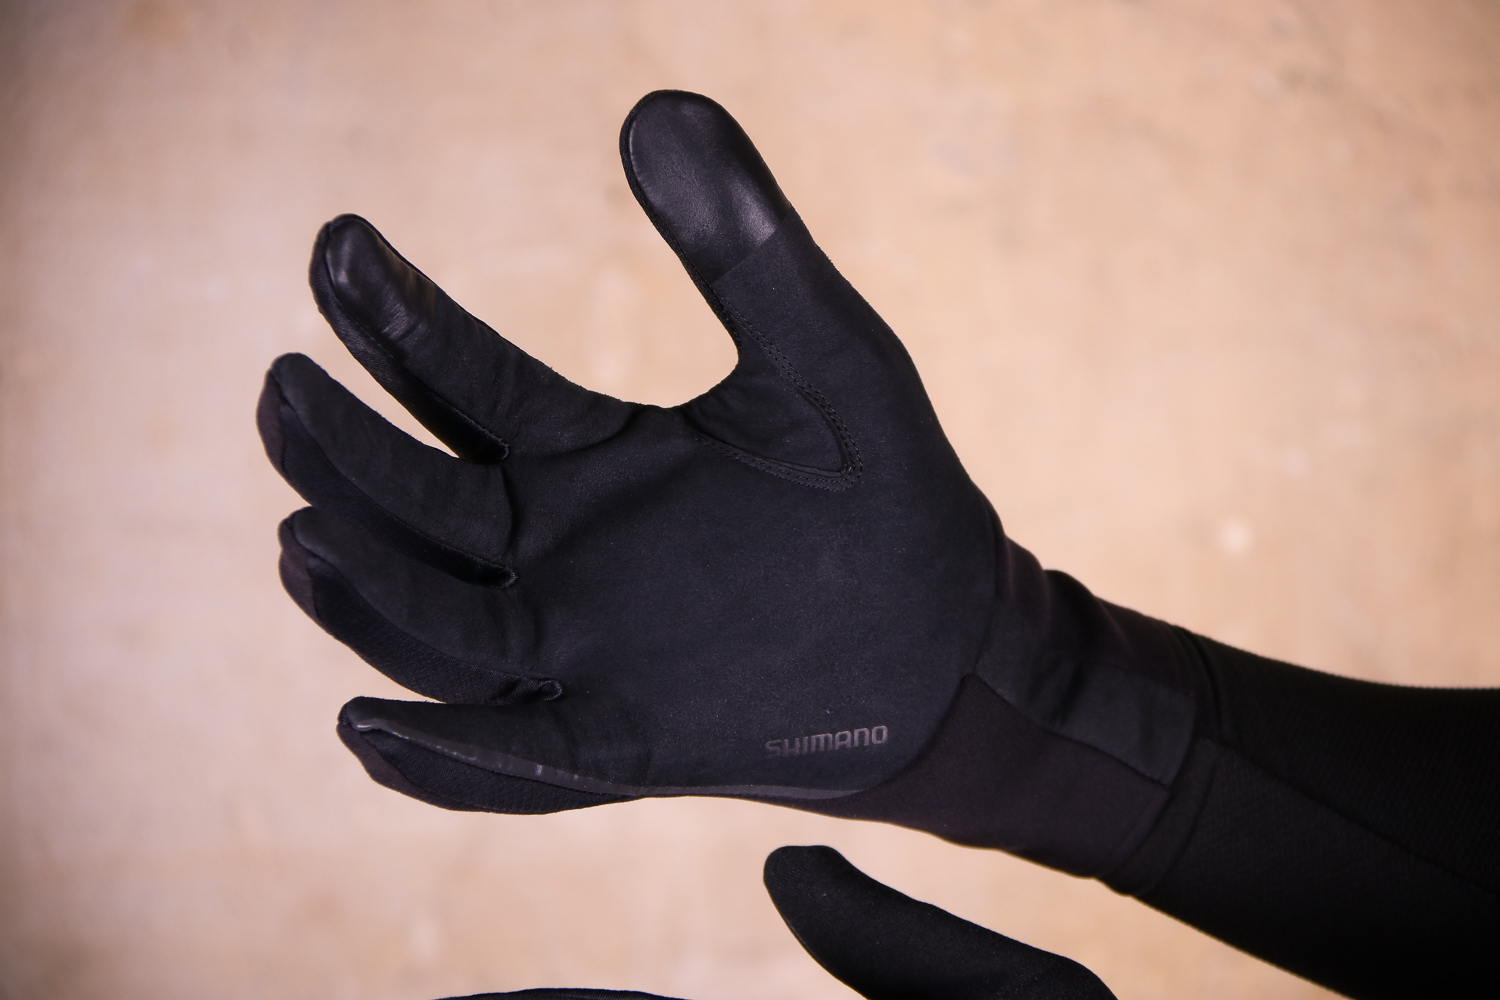 Shimano S-Sphyre Cycling Gloves Brand New in Box